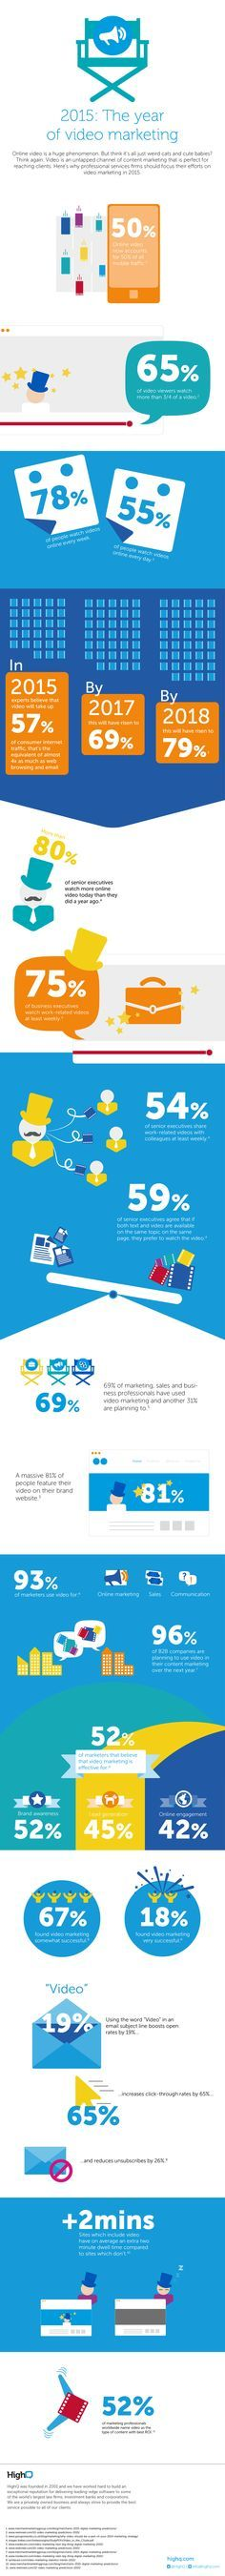 2015: The Year of Video Marketing - #infographic